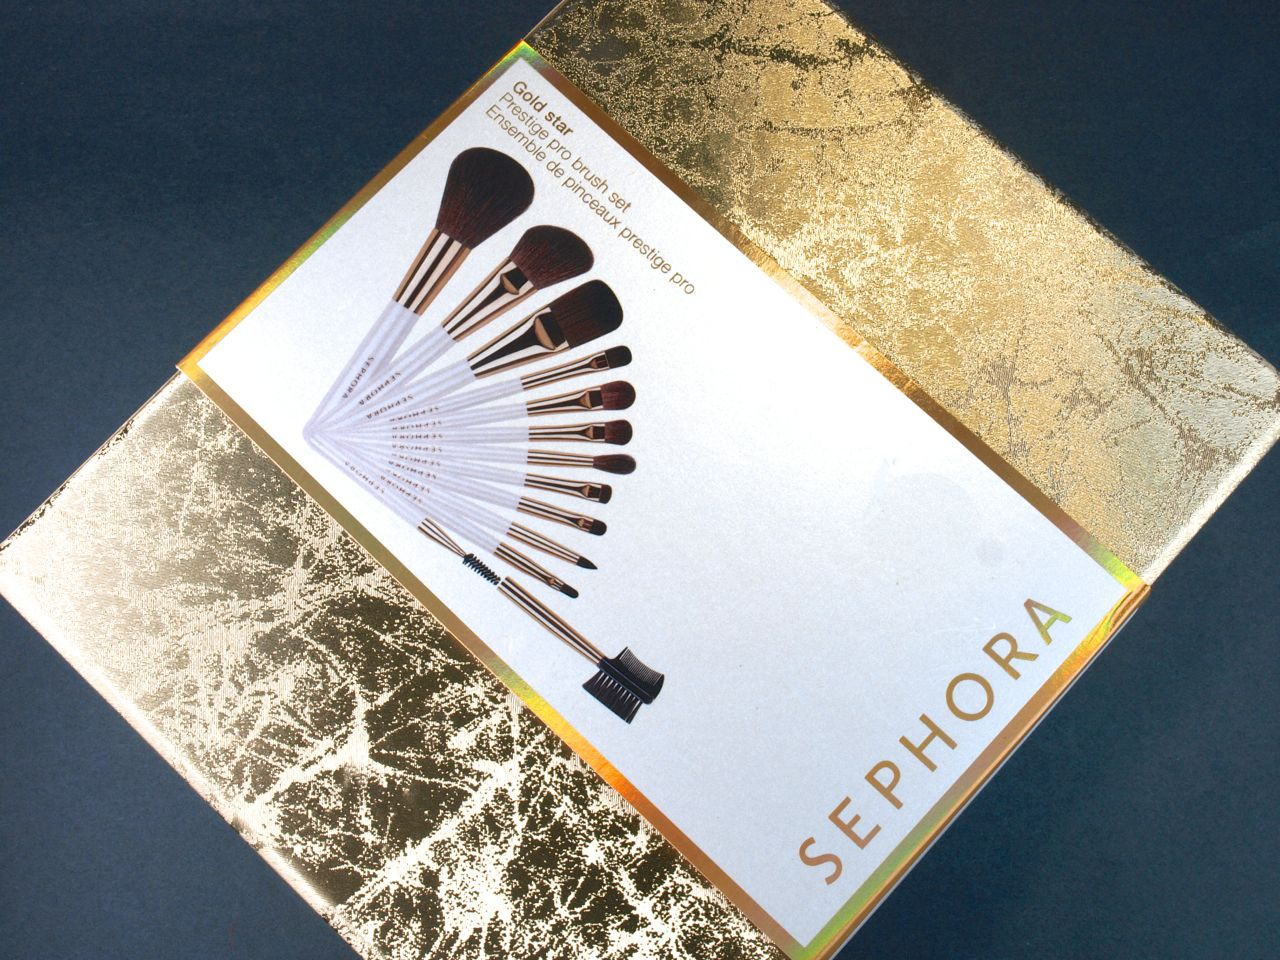 Pro Smudge Brush #11 by Sephora Collection #13